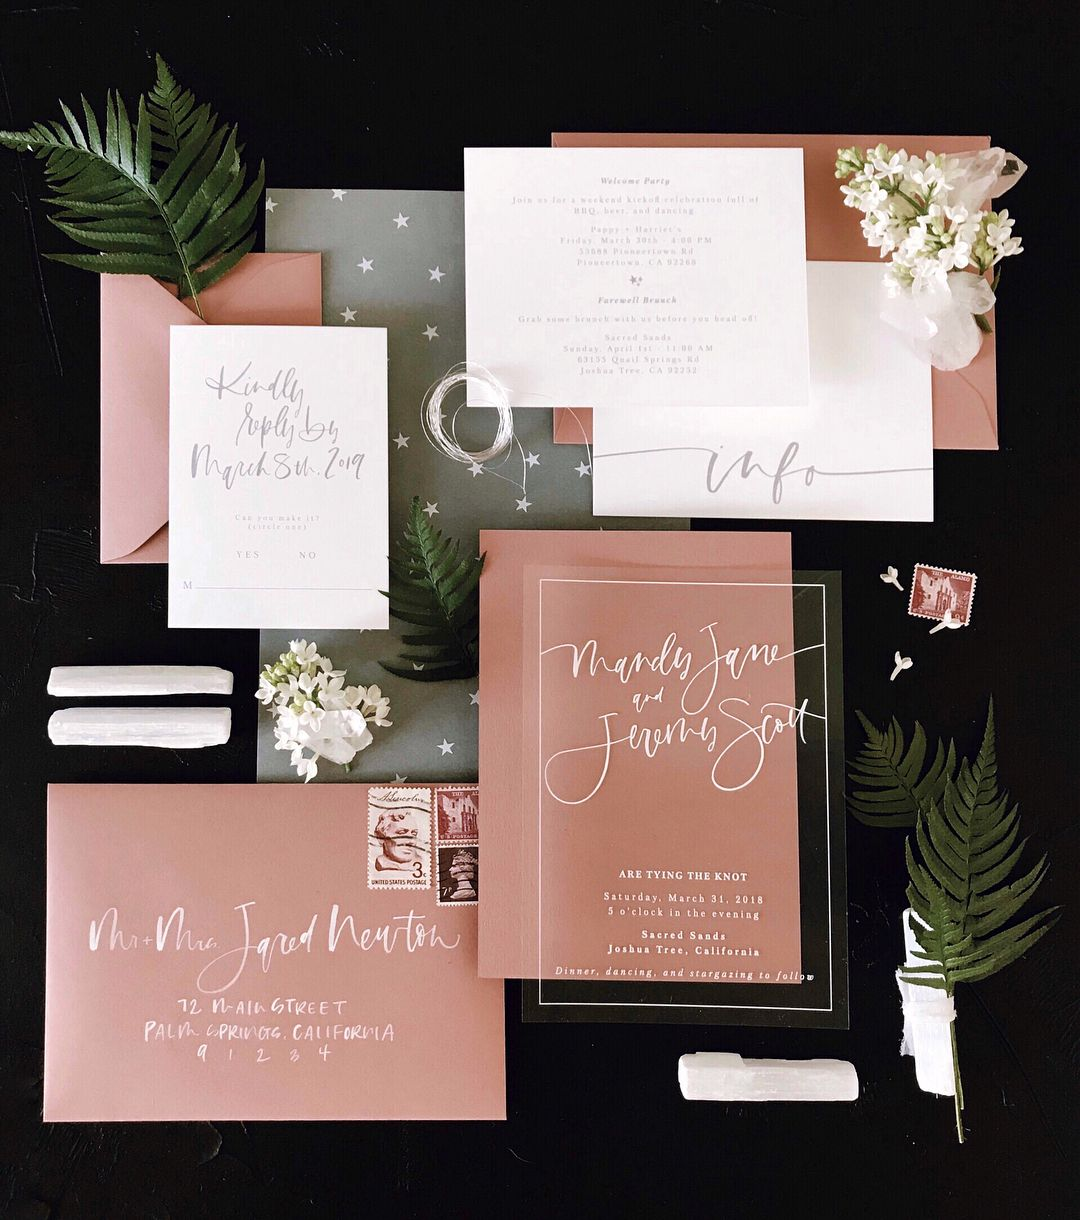 All of our favorite things wrapped up in one suite clear invite